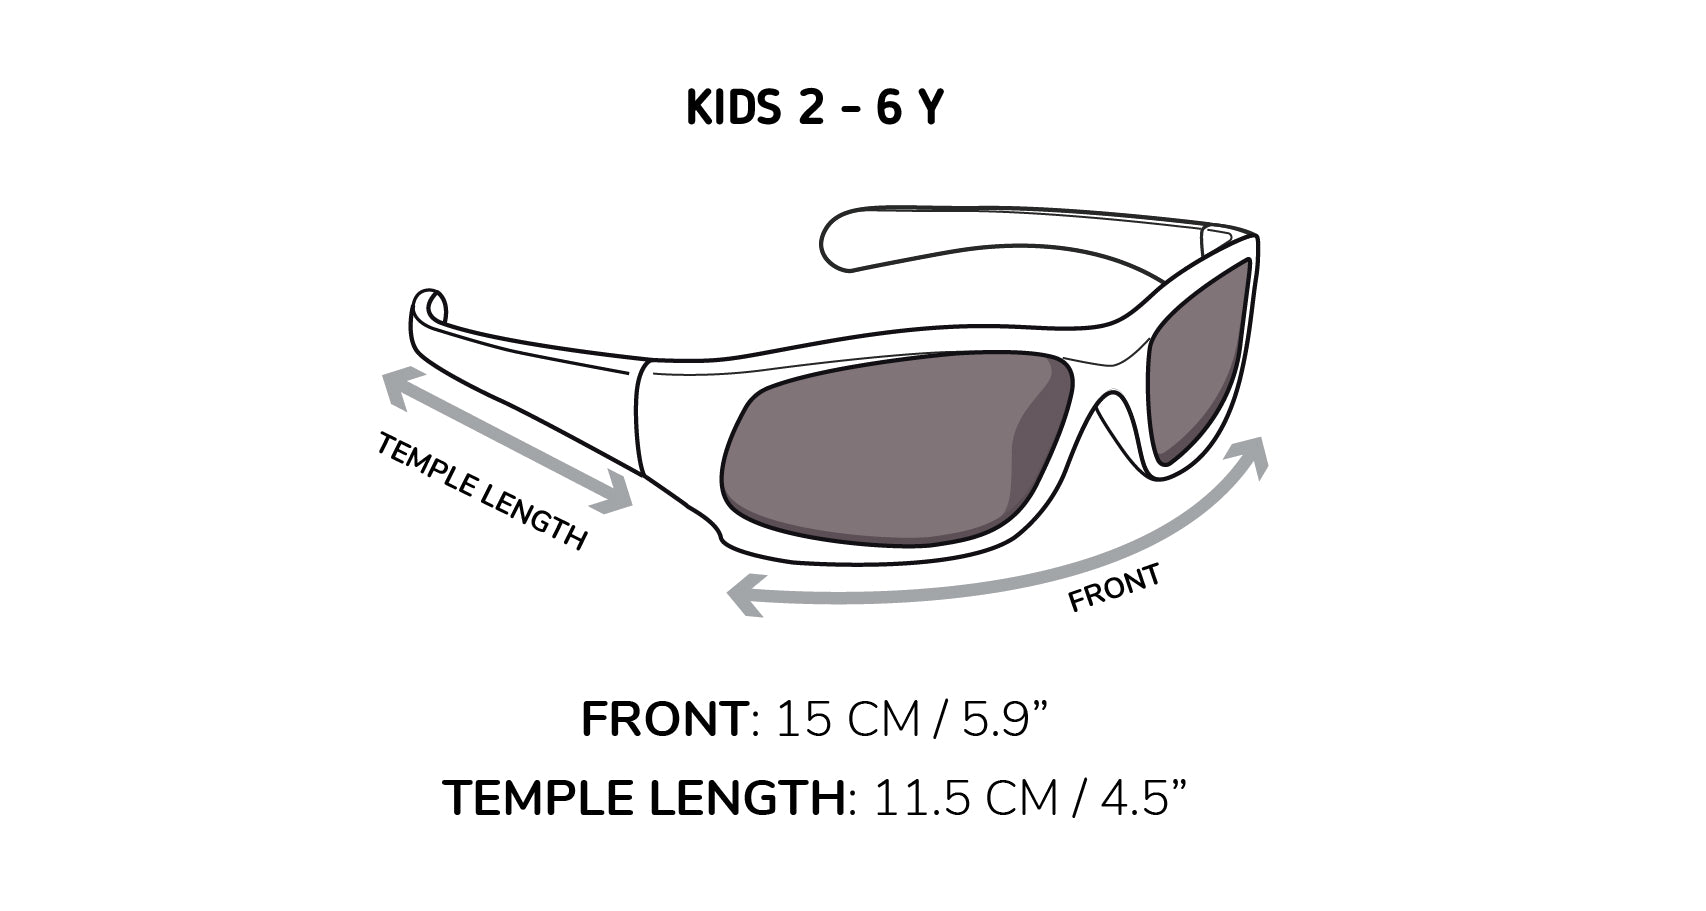 Sizing for Kid Sunnies